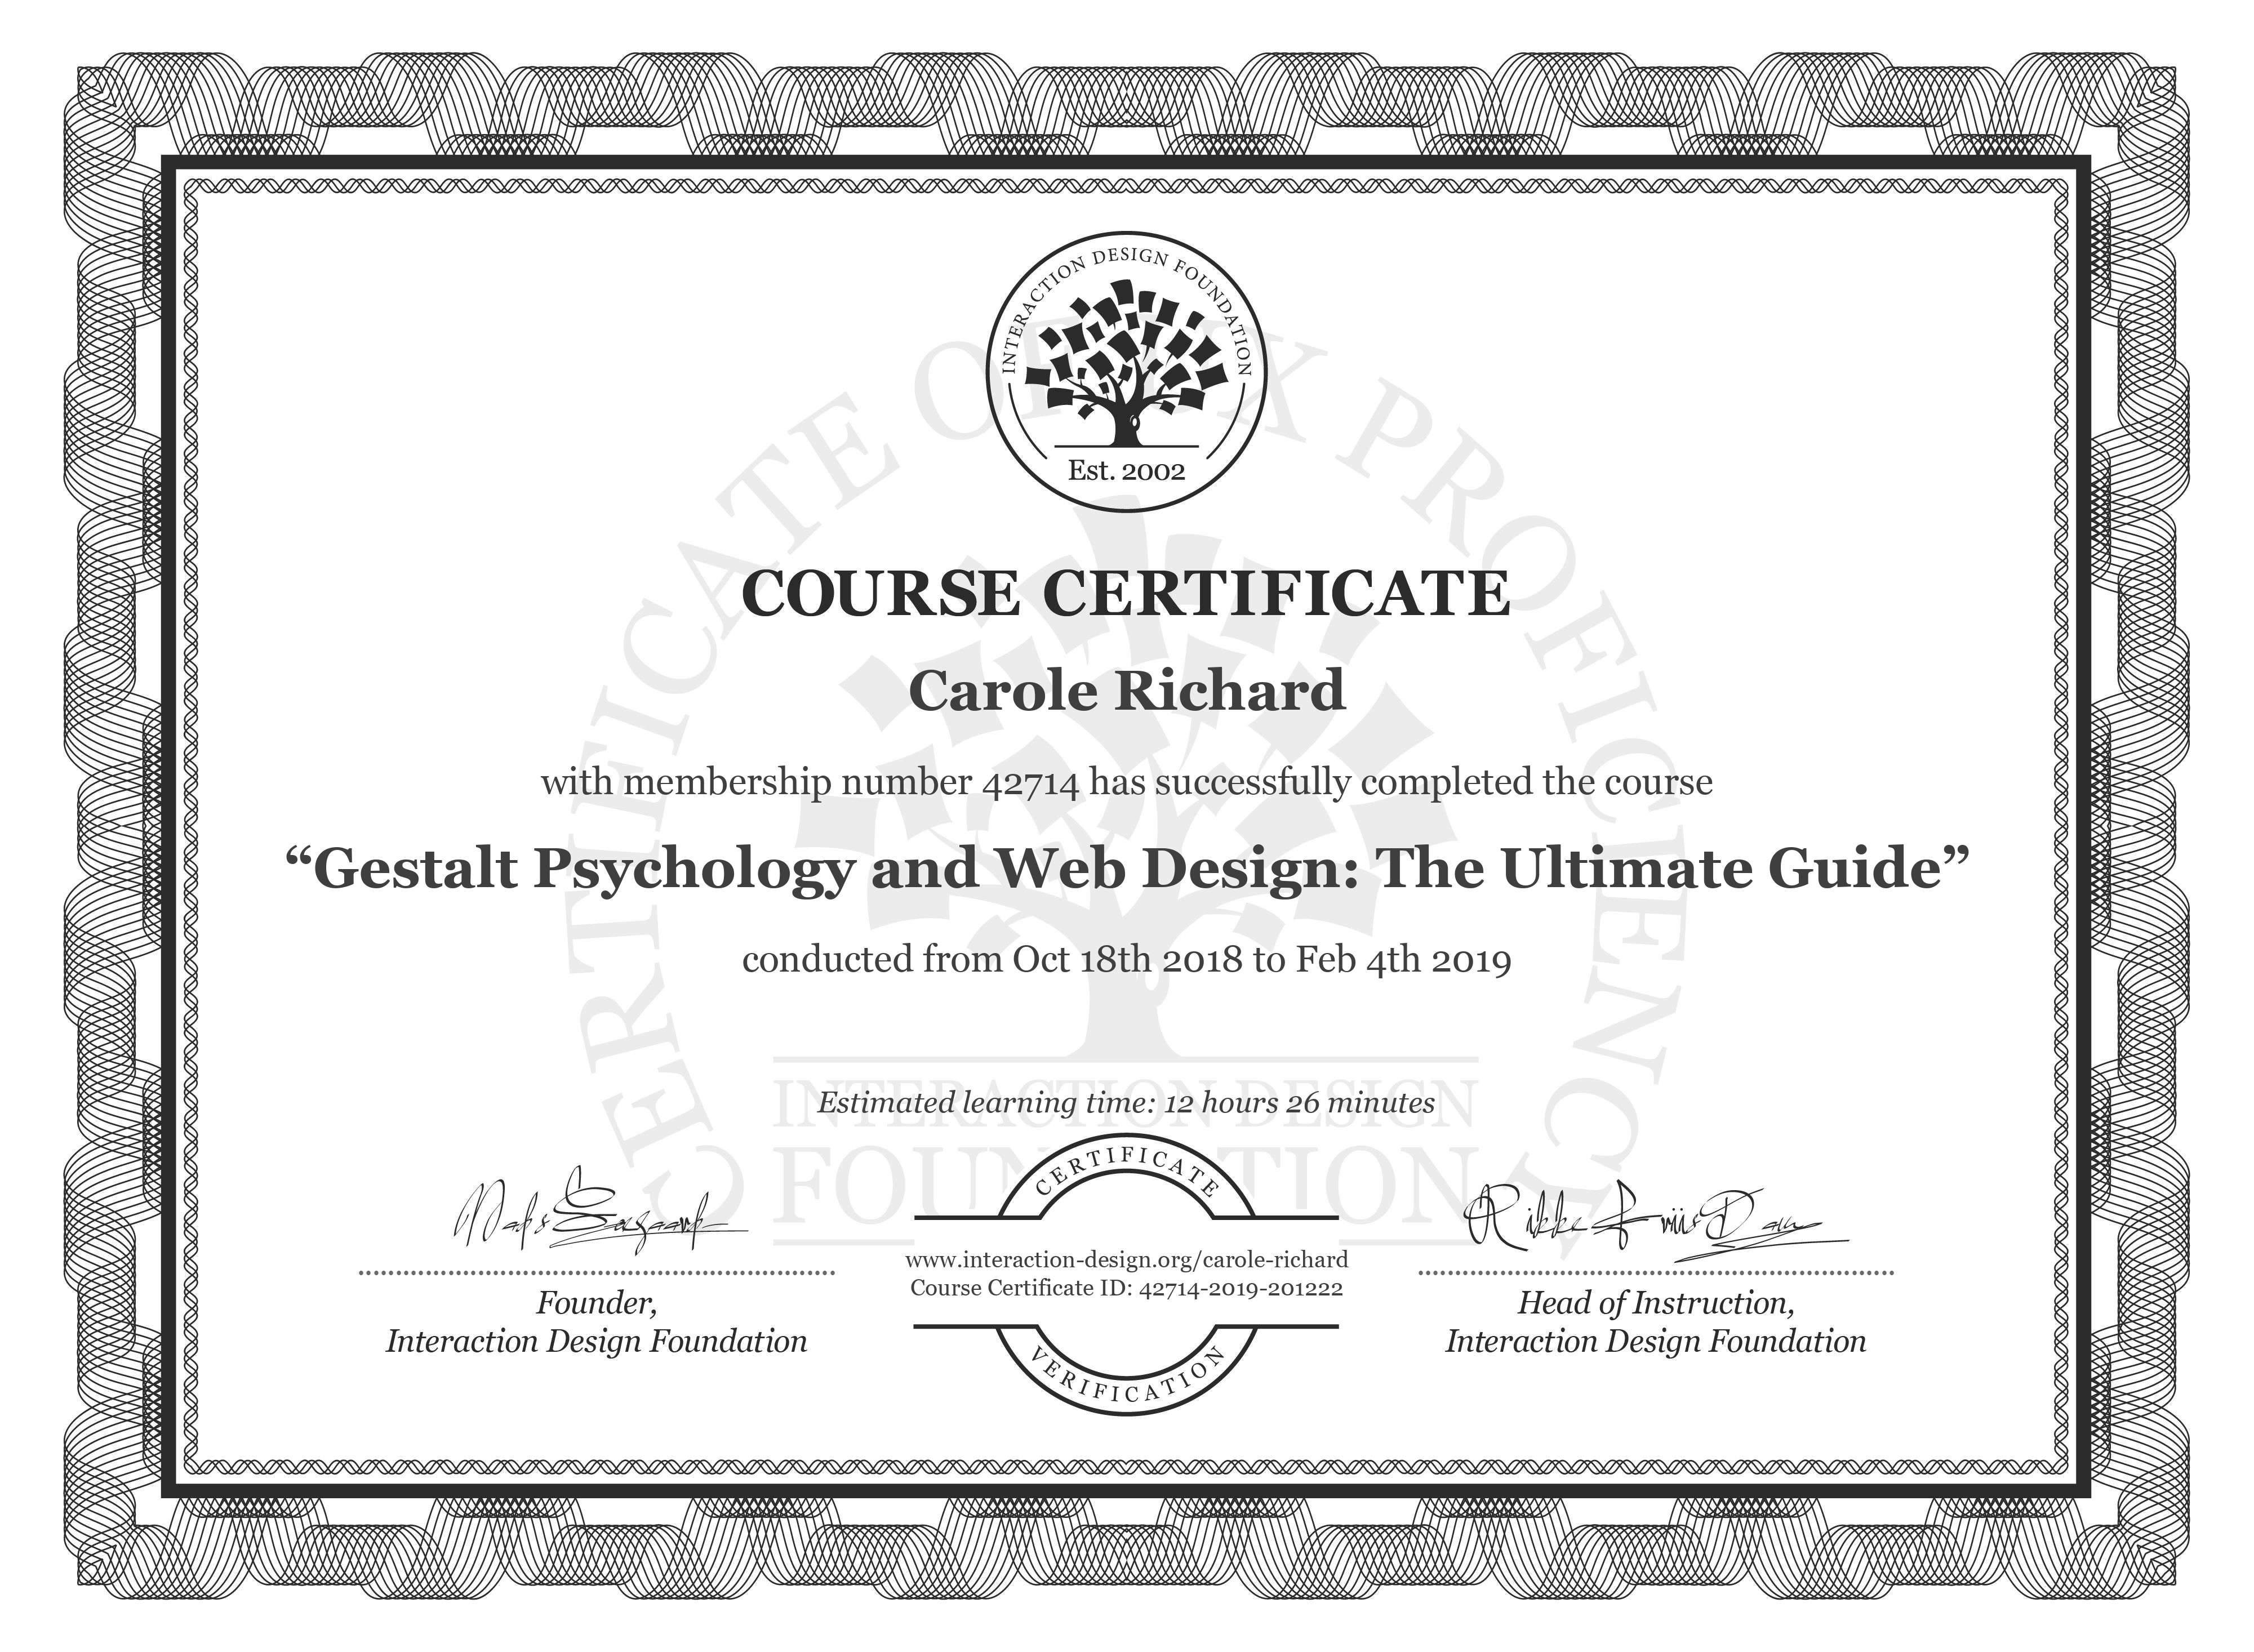 Carole Richard's Course Certificate: Gestalt Psychology and Web Design: The Ultimate Guide